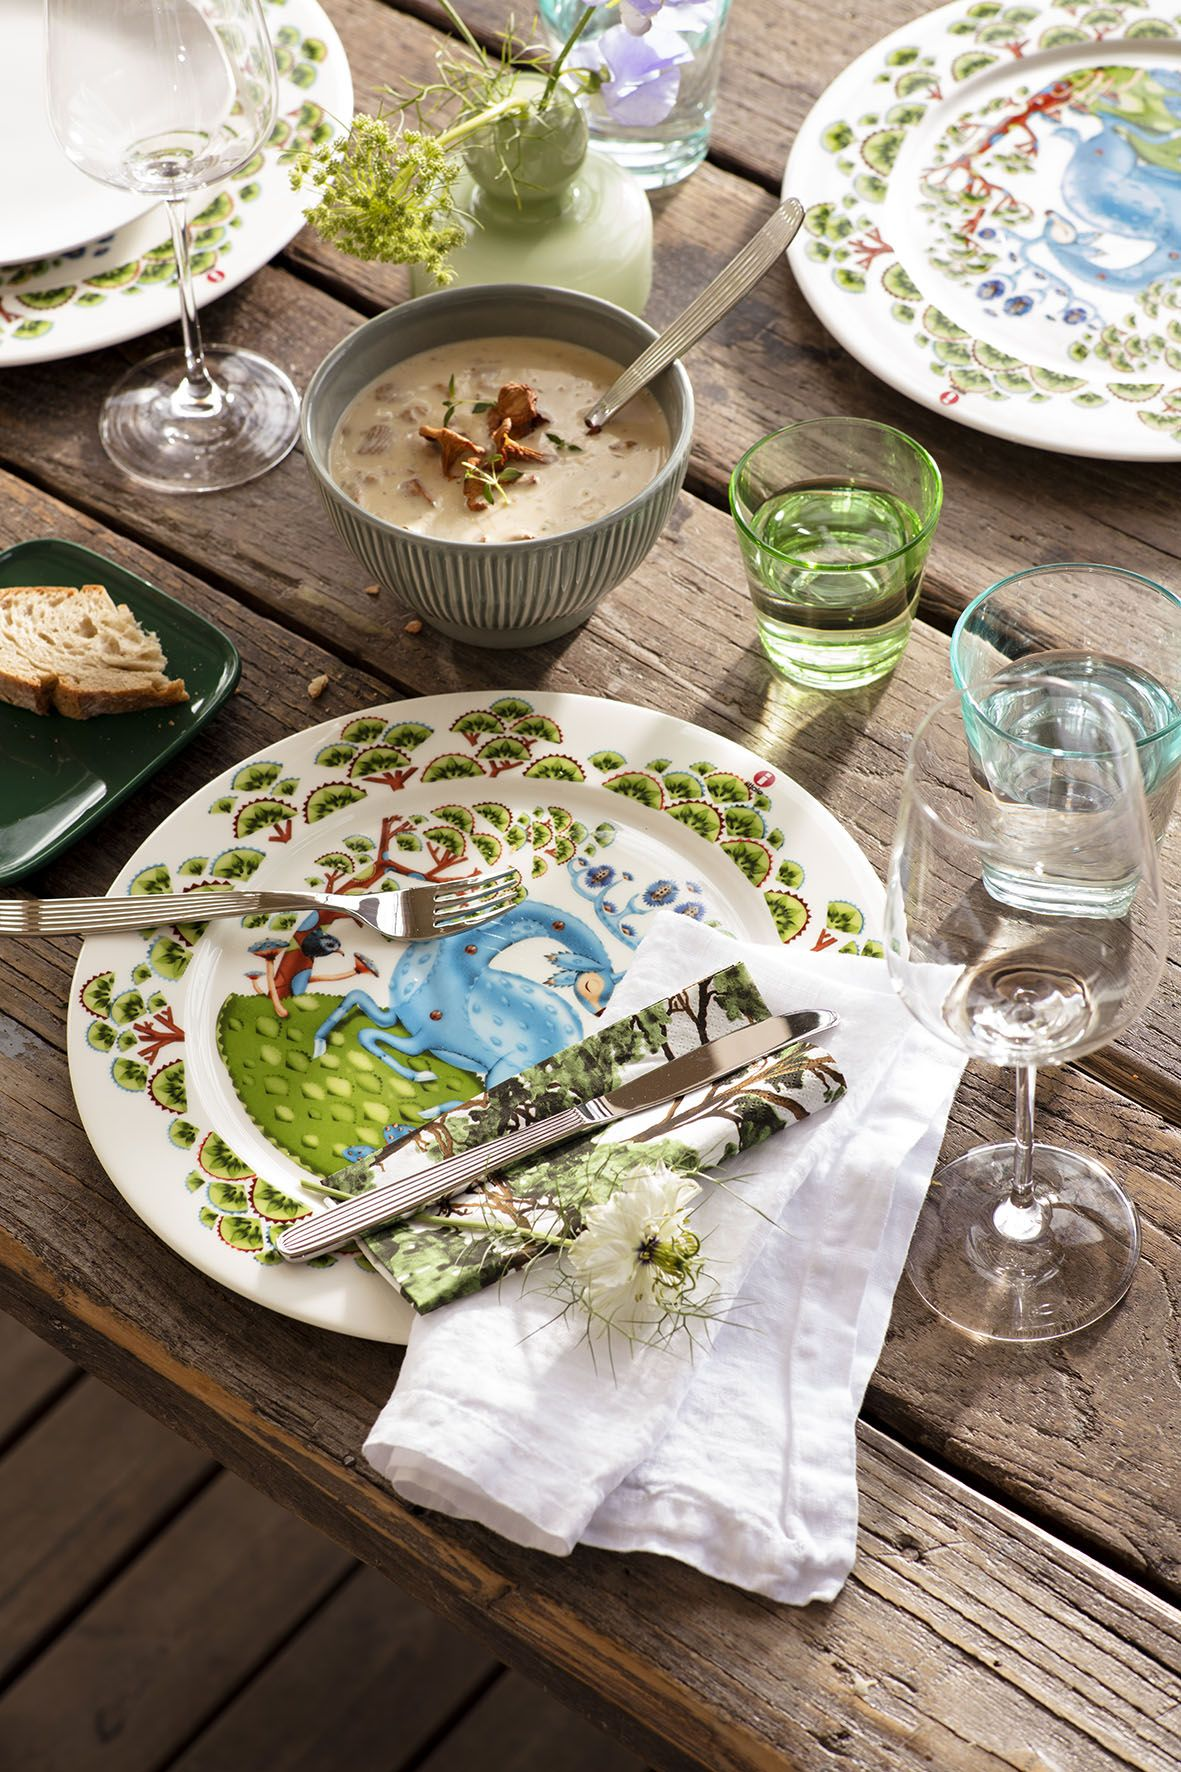 Bring some rustic romance to the table with natural materials and summery glassware.